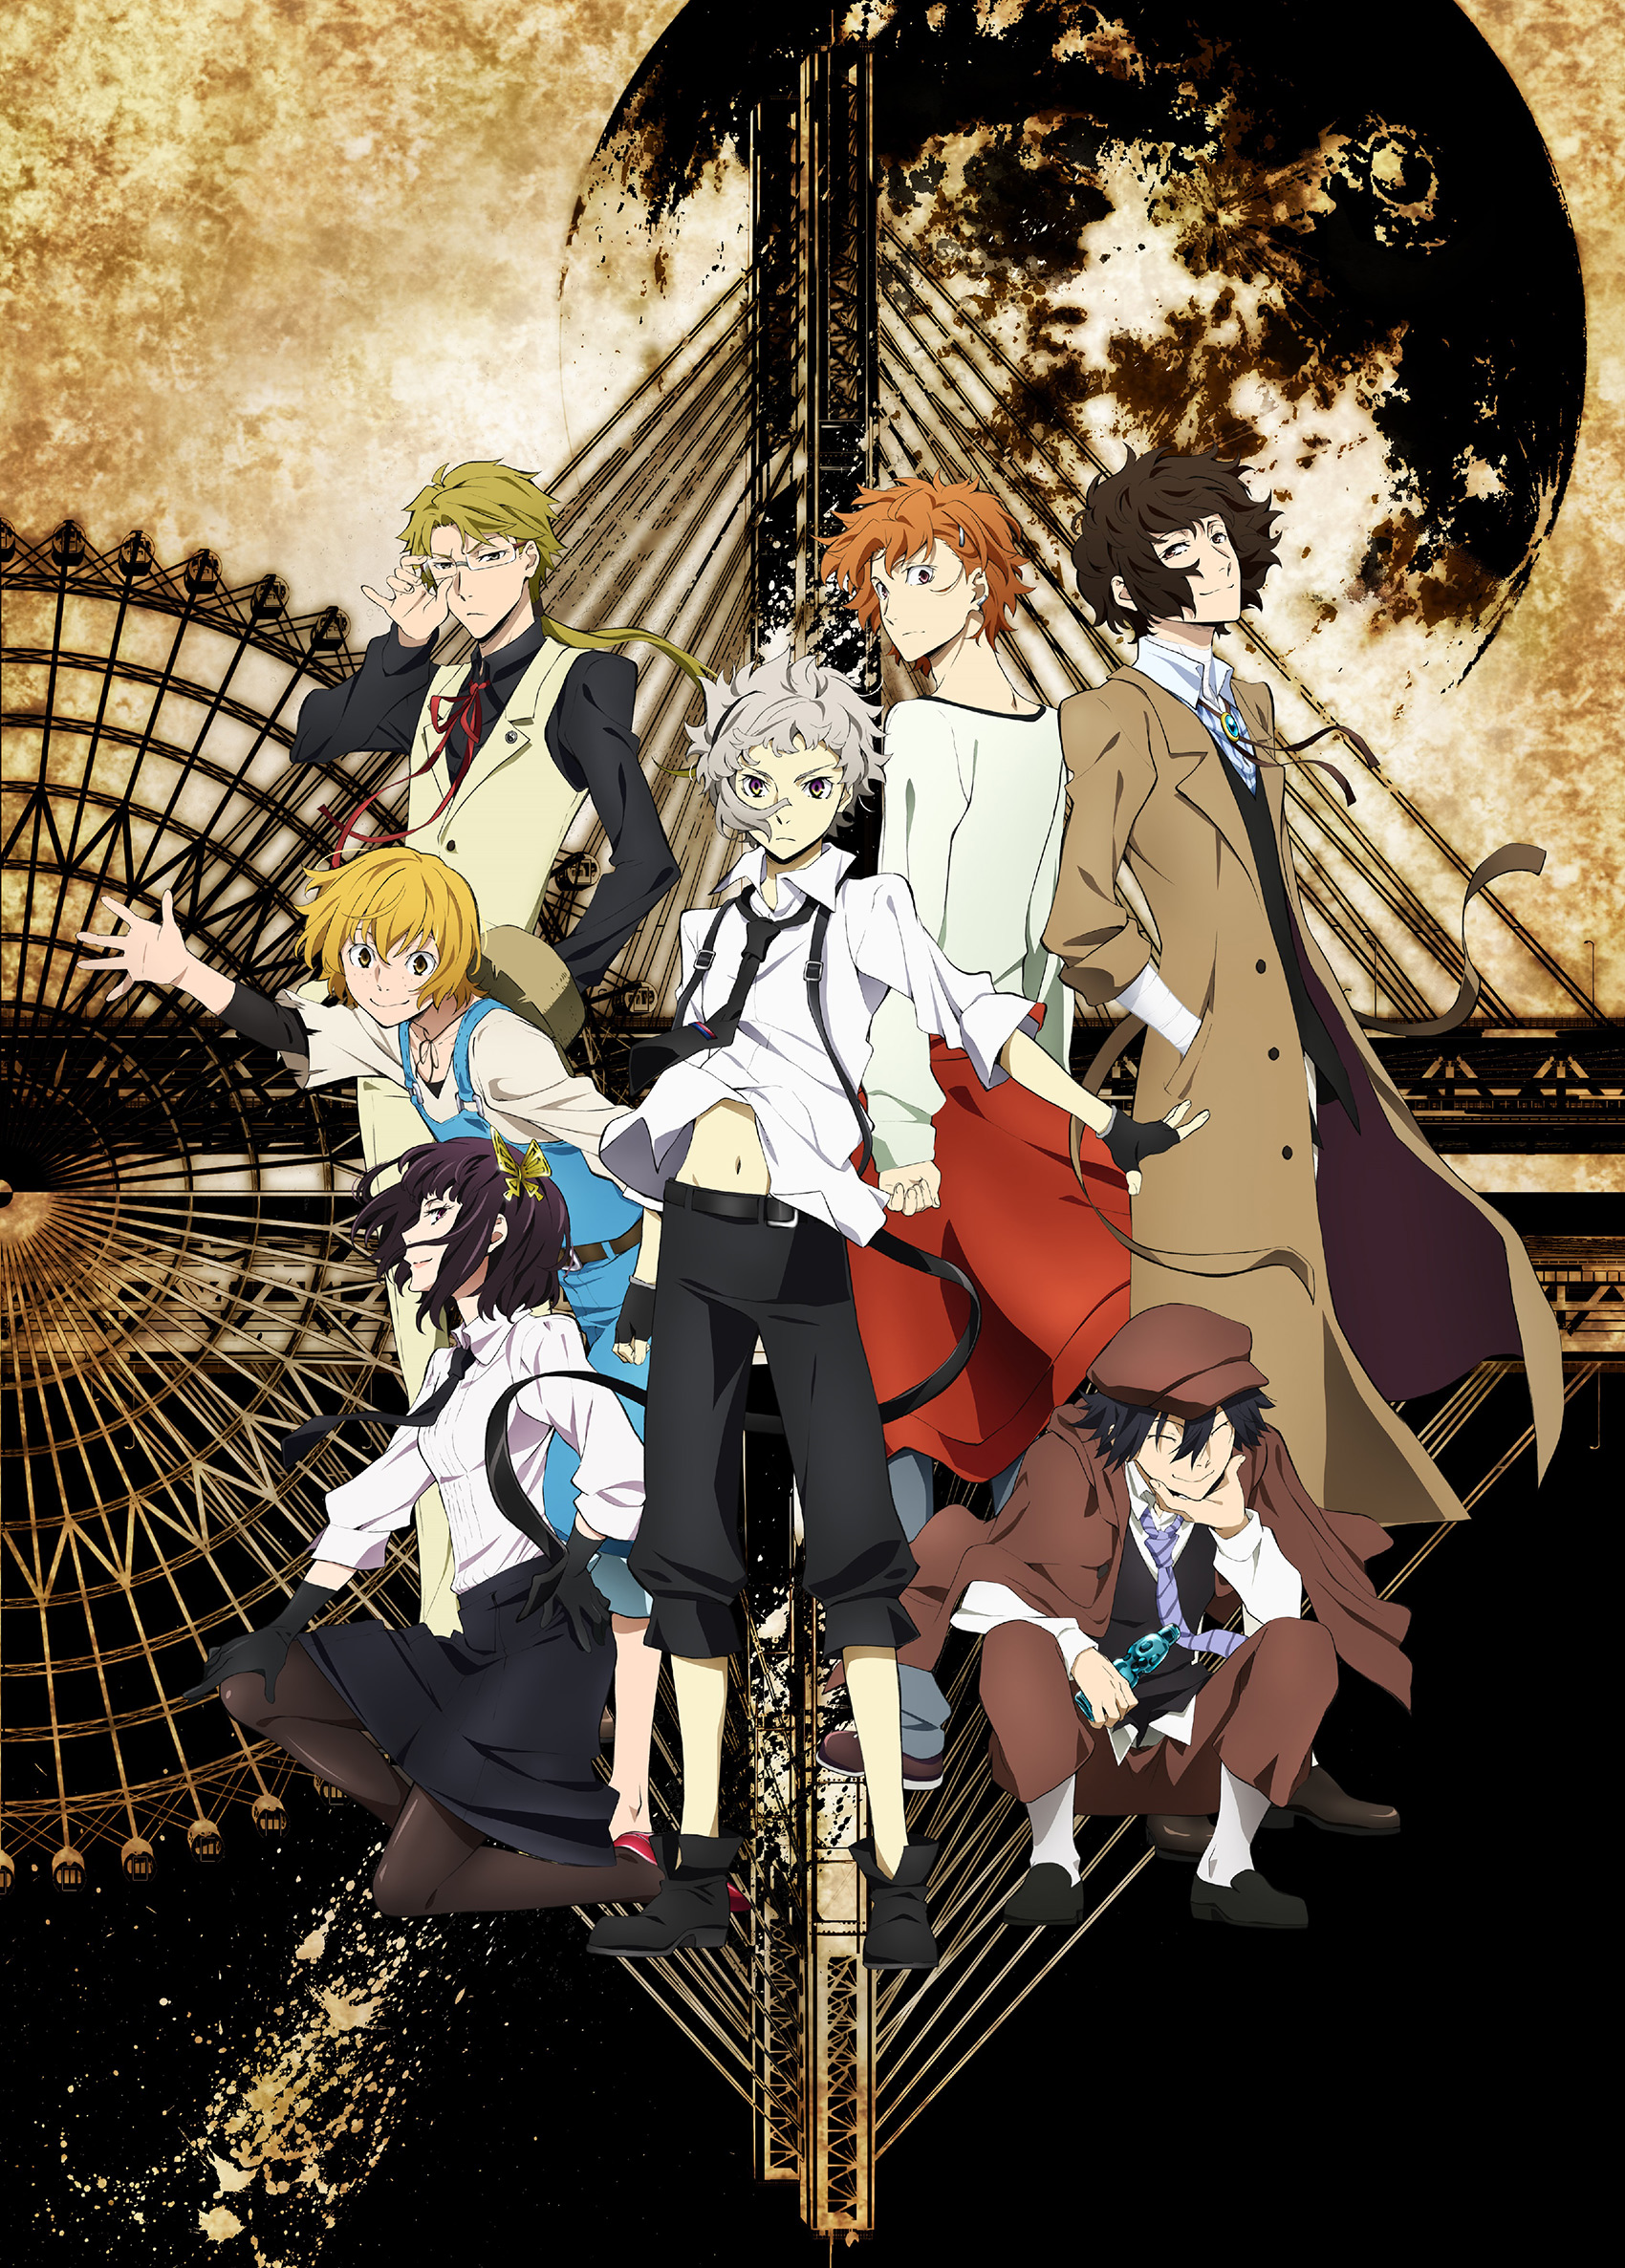 Bungou Stray Dogs Slated for April and Visual Revealed